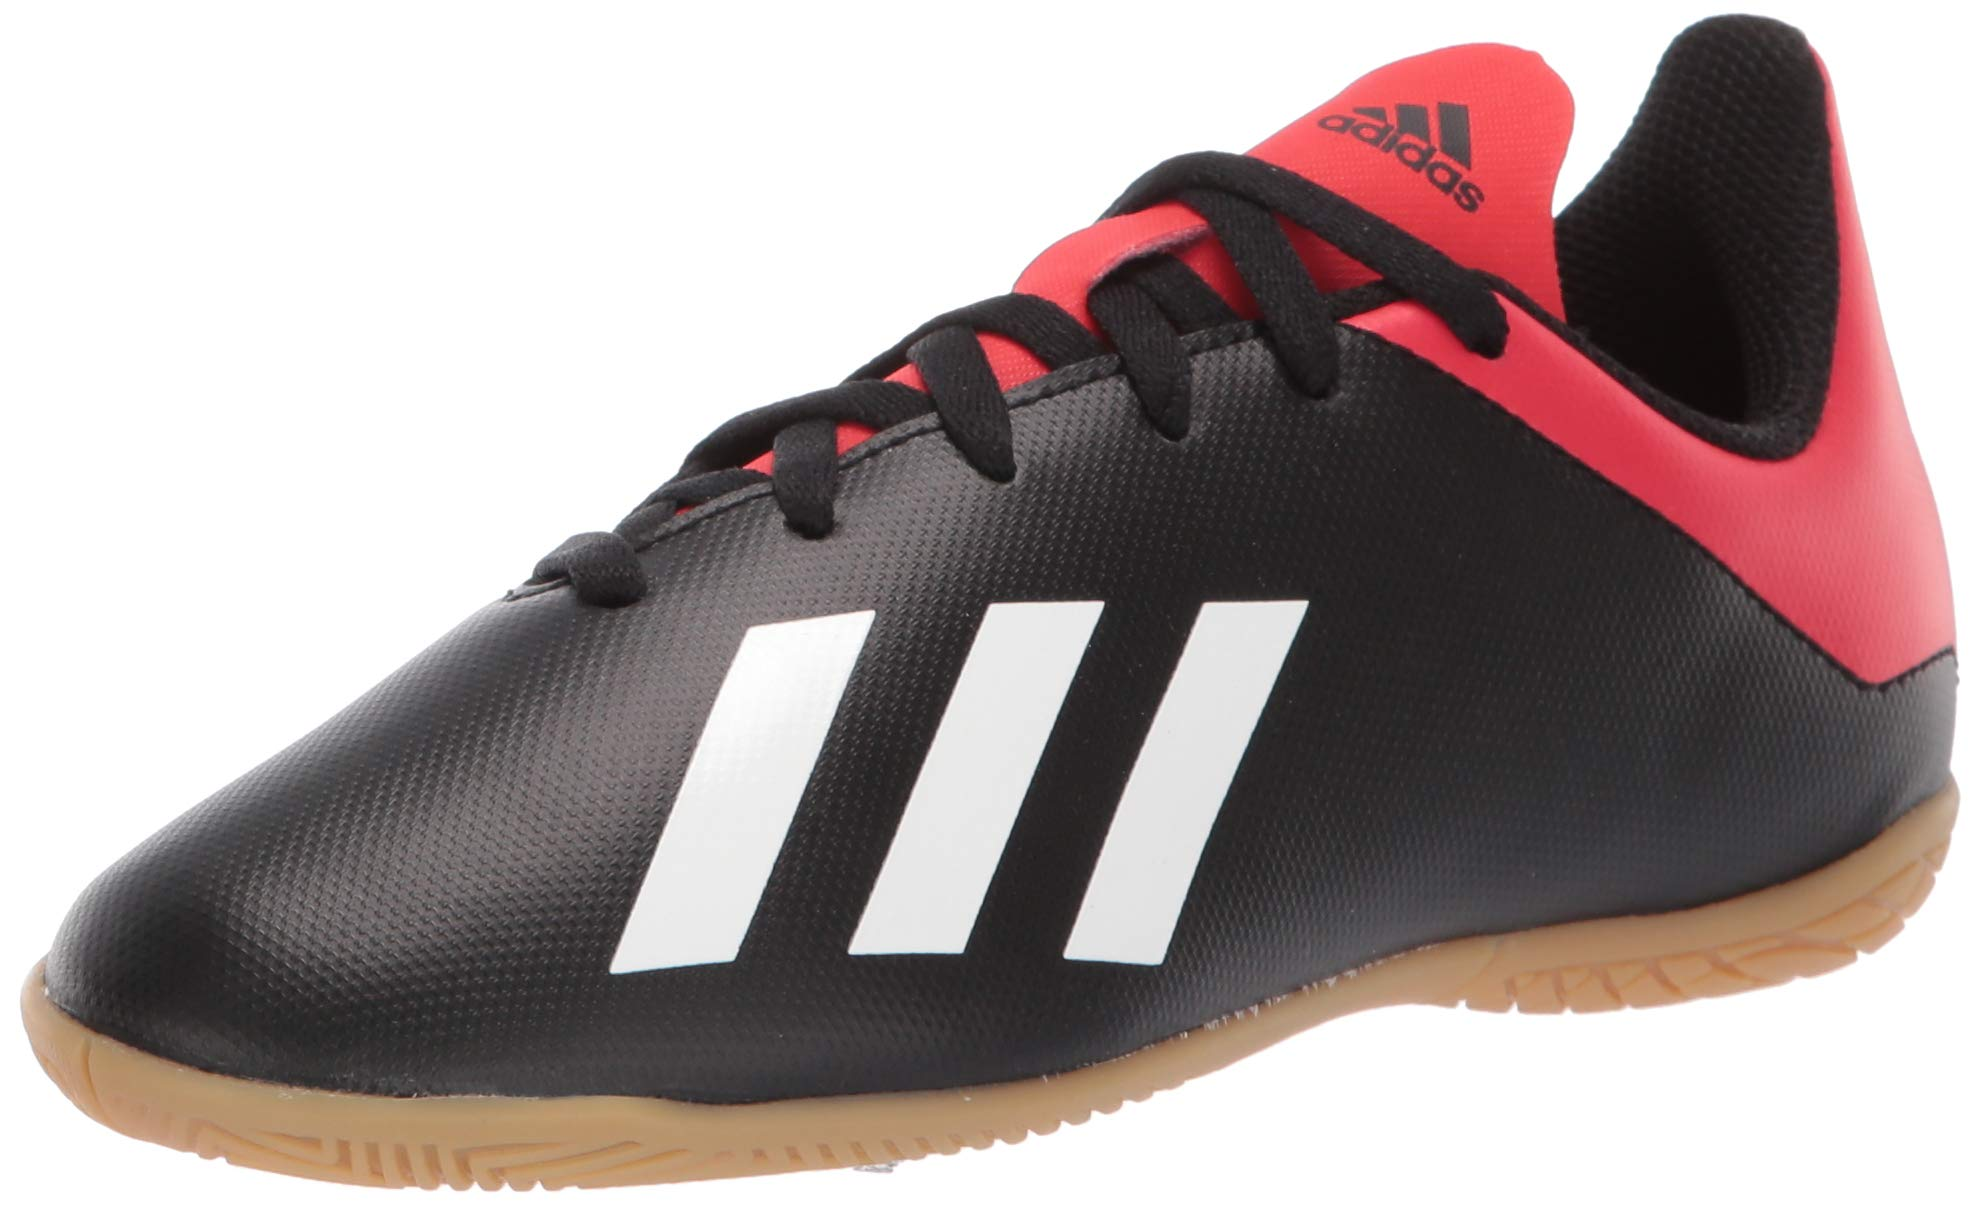 5a38a9720 adidas Kids X 18.4 Indoor, black/off white/active red 12.5K M US